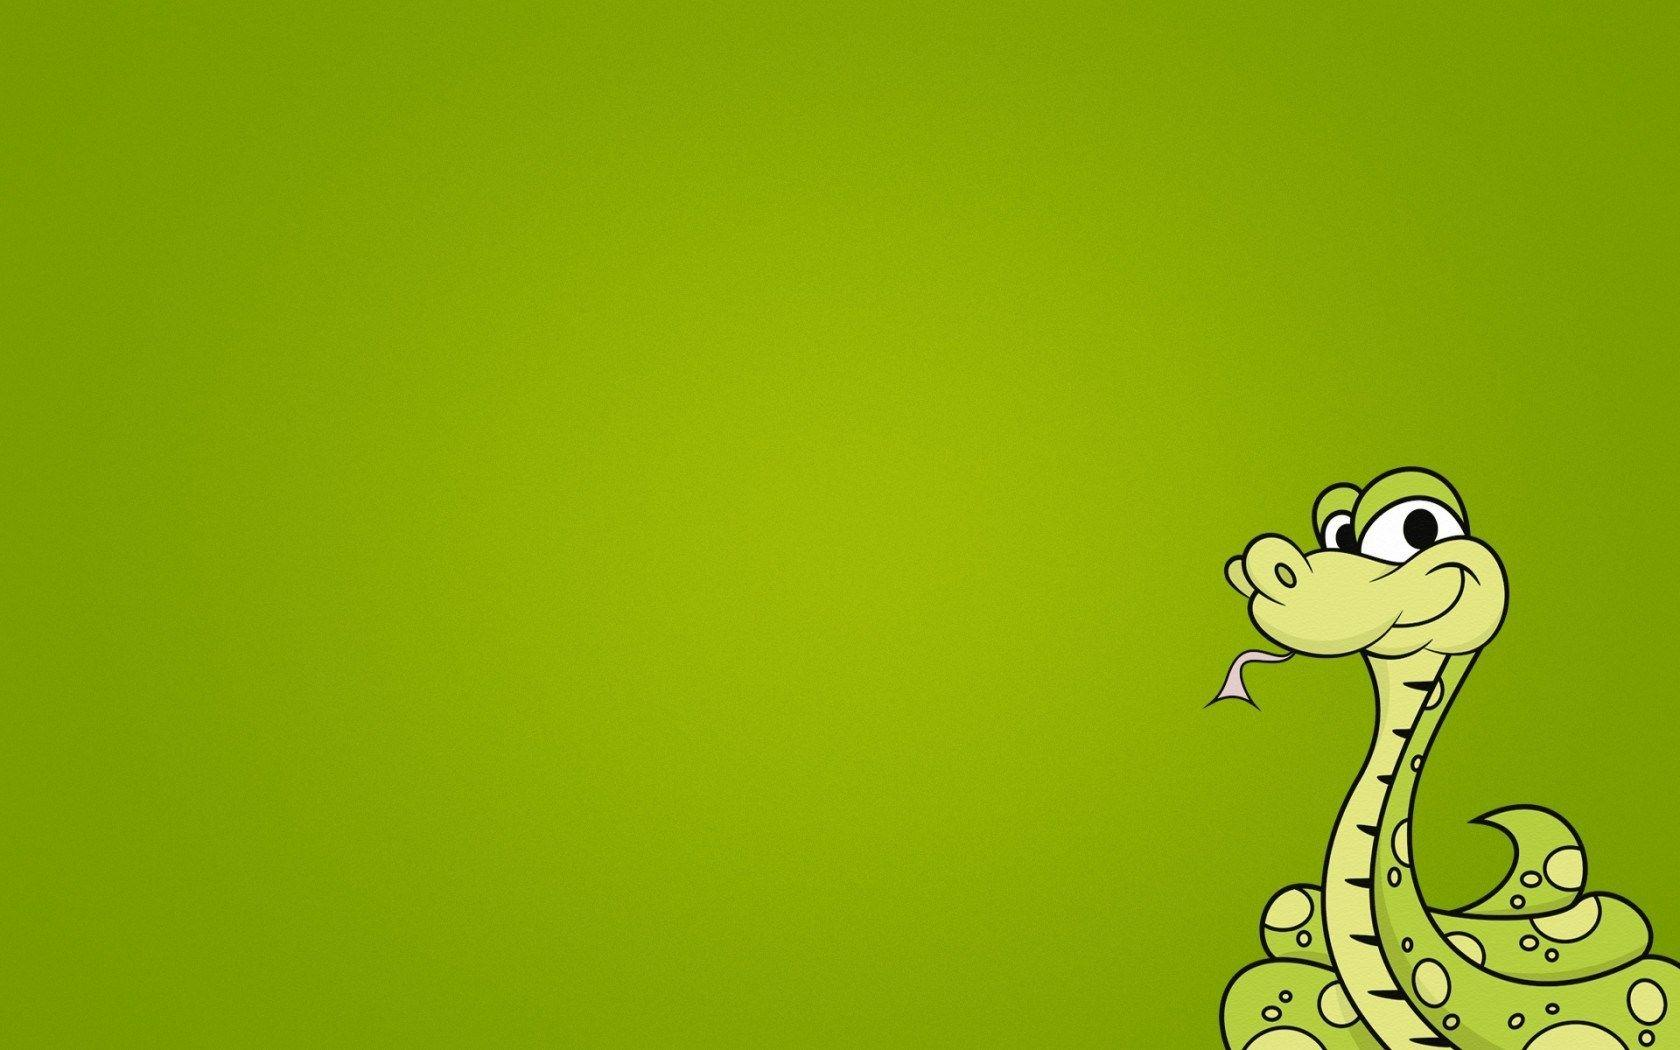 Snake Game Wallpapers Wallpaper Cave